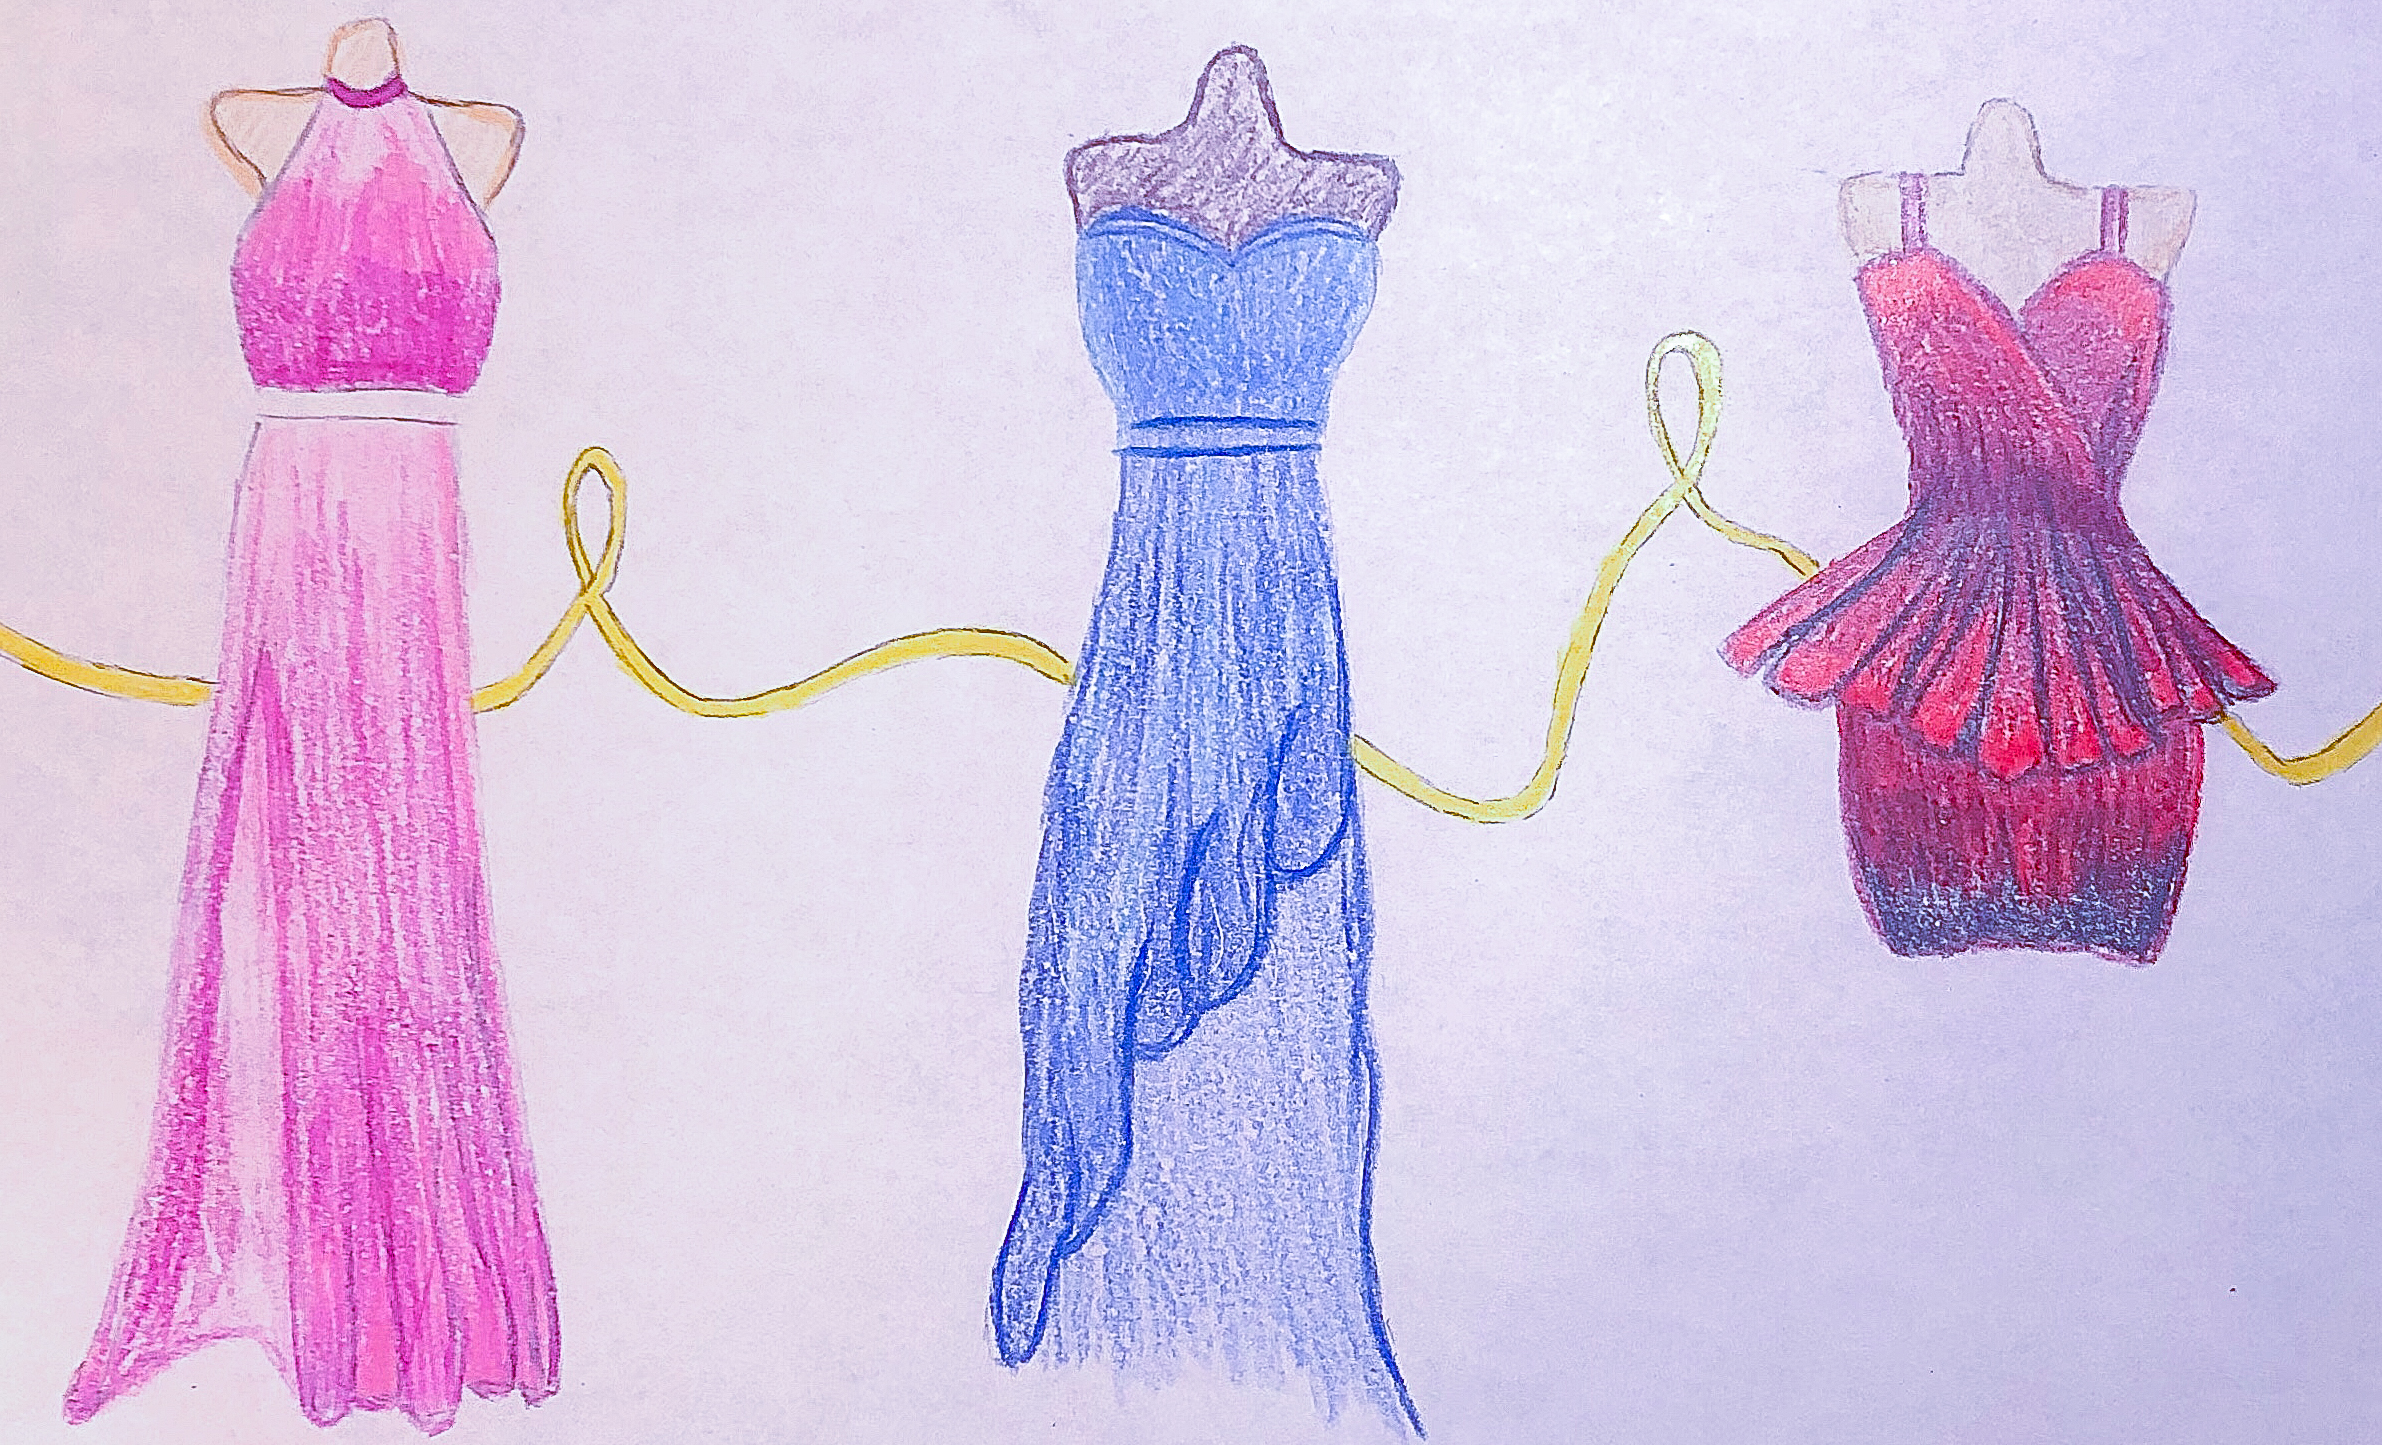 Prom Dresses Throughout Time